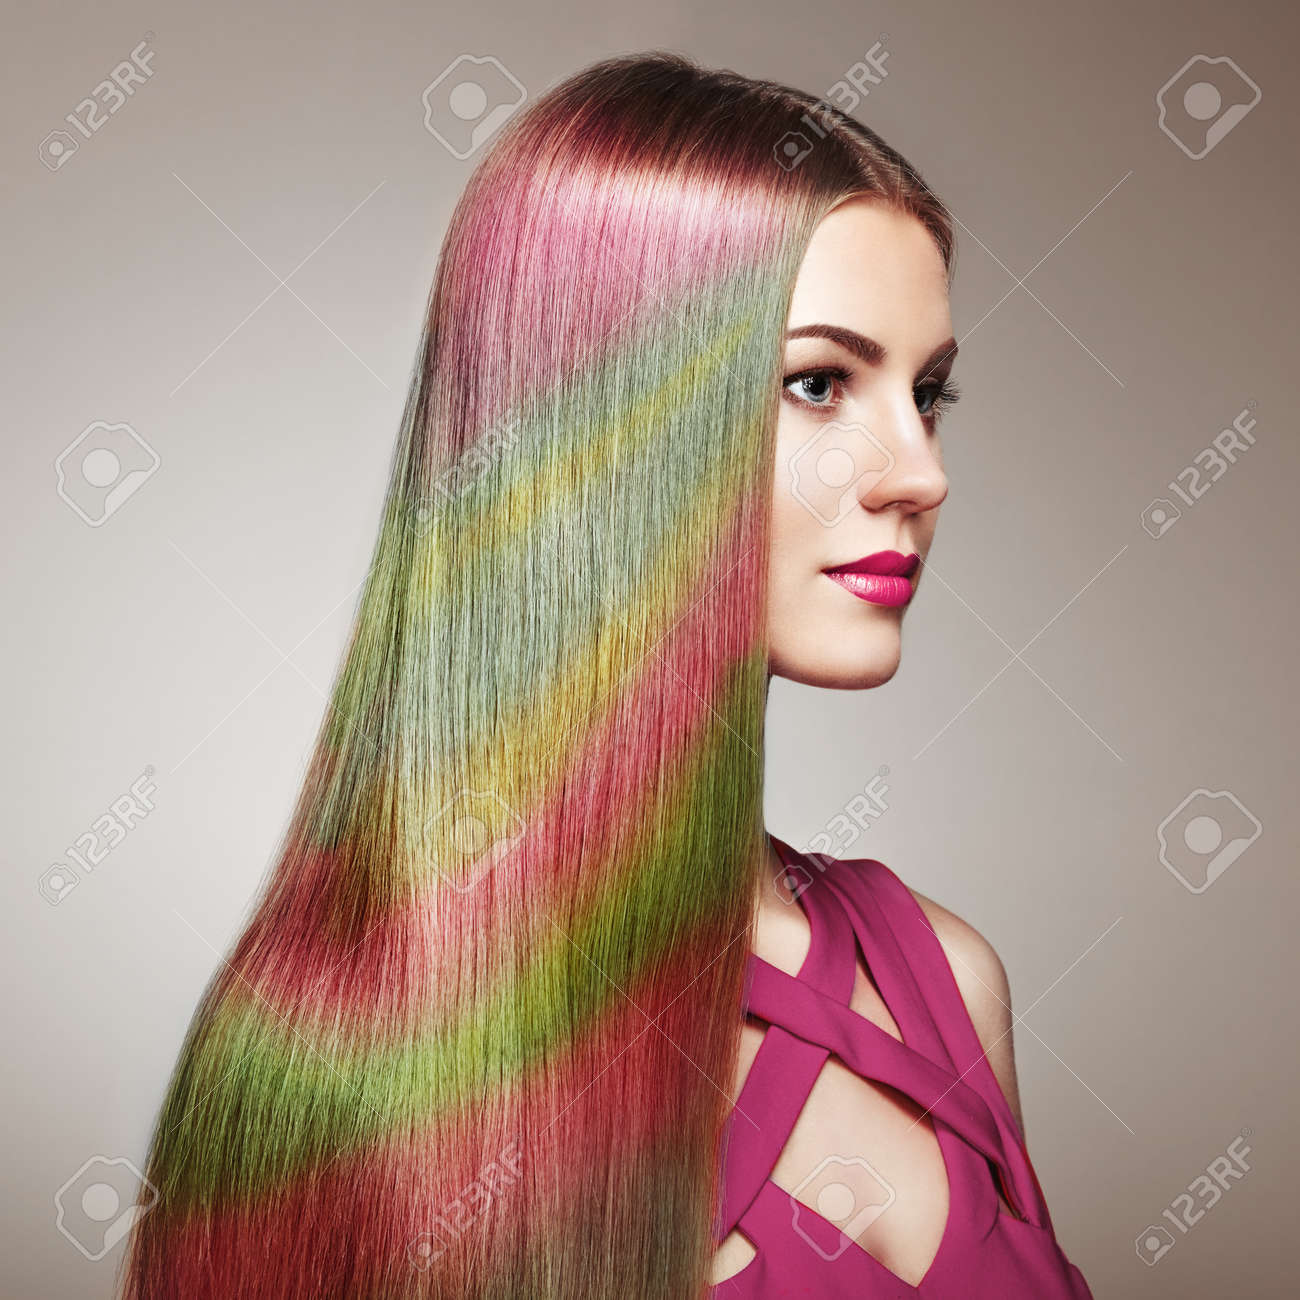 Beauty Fashion Model Girl With Colorful Dyed Hair. Girl With ...